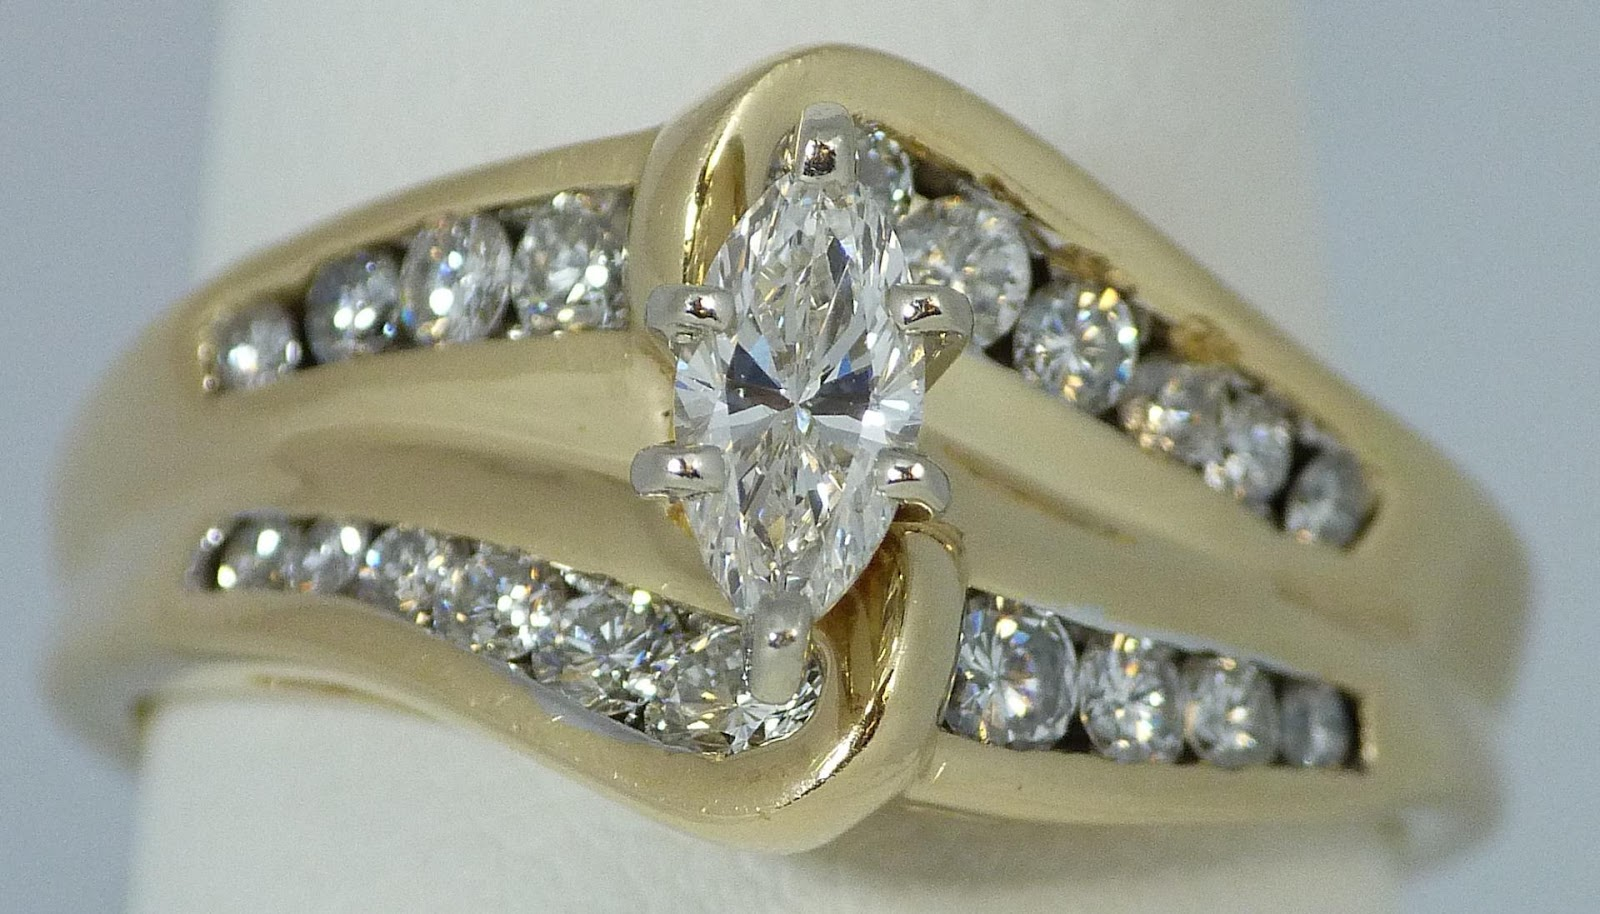 153 - 14K YELLOW GOLD DIAMOND